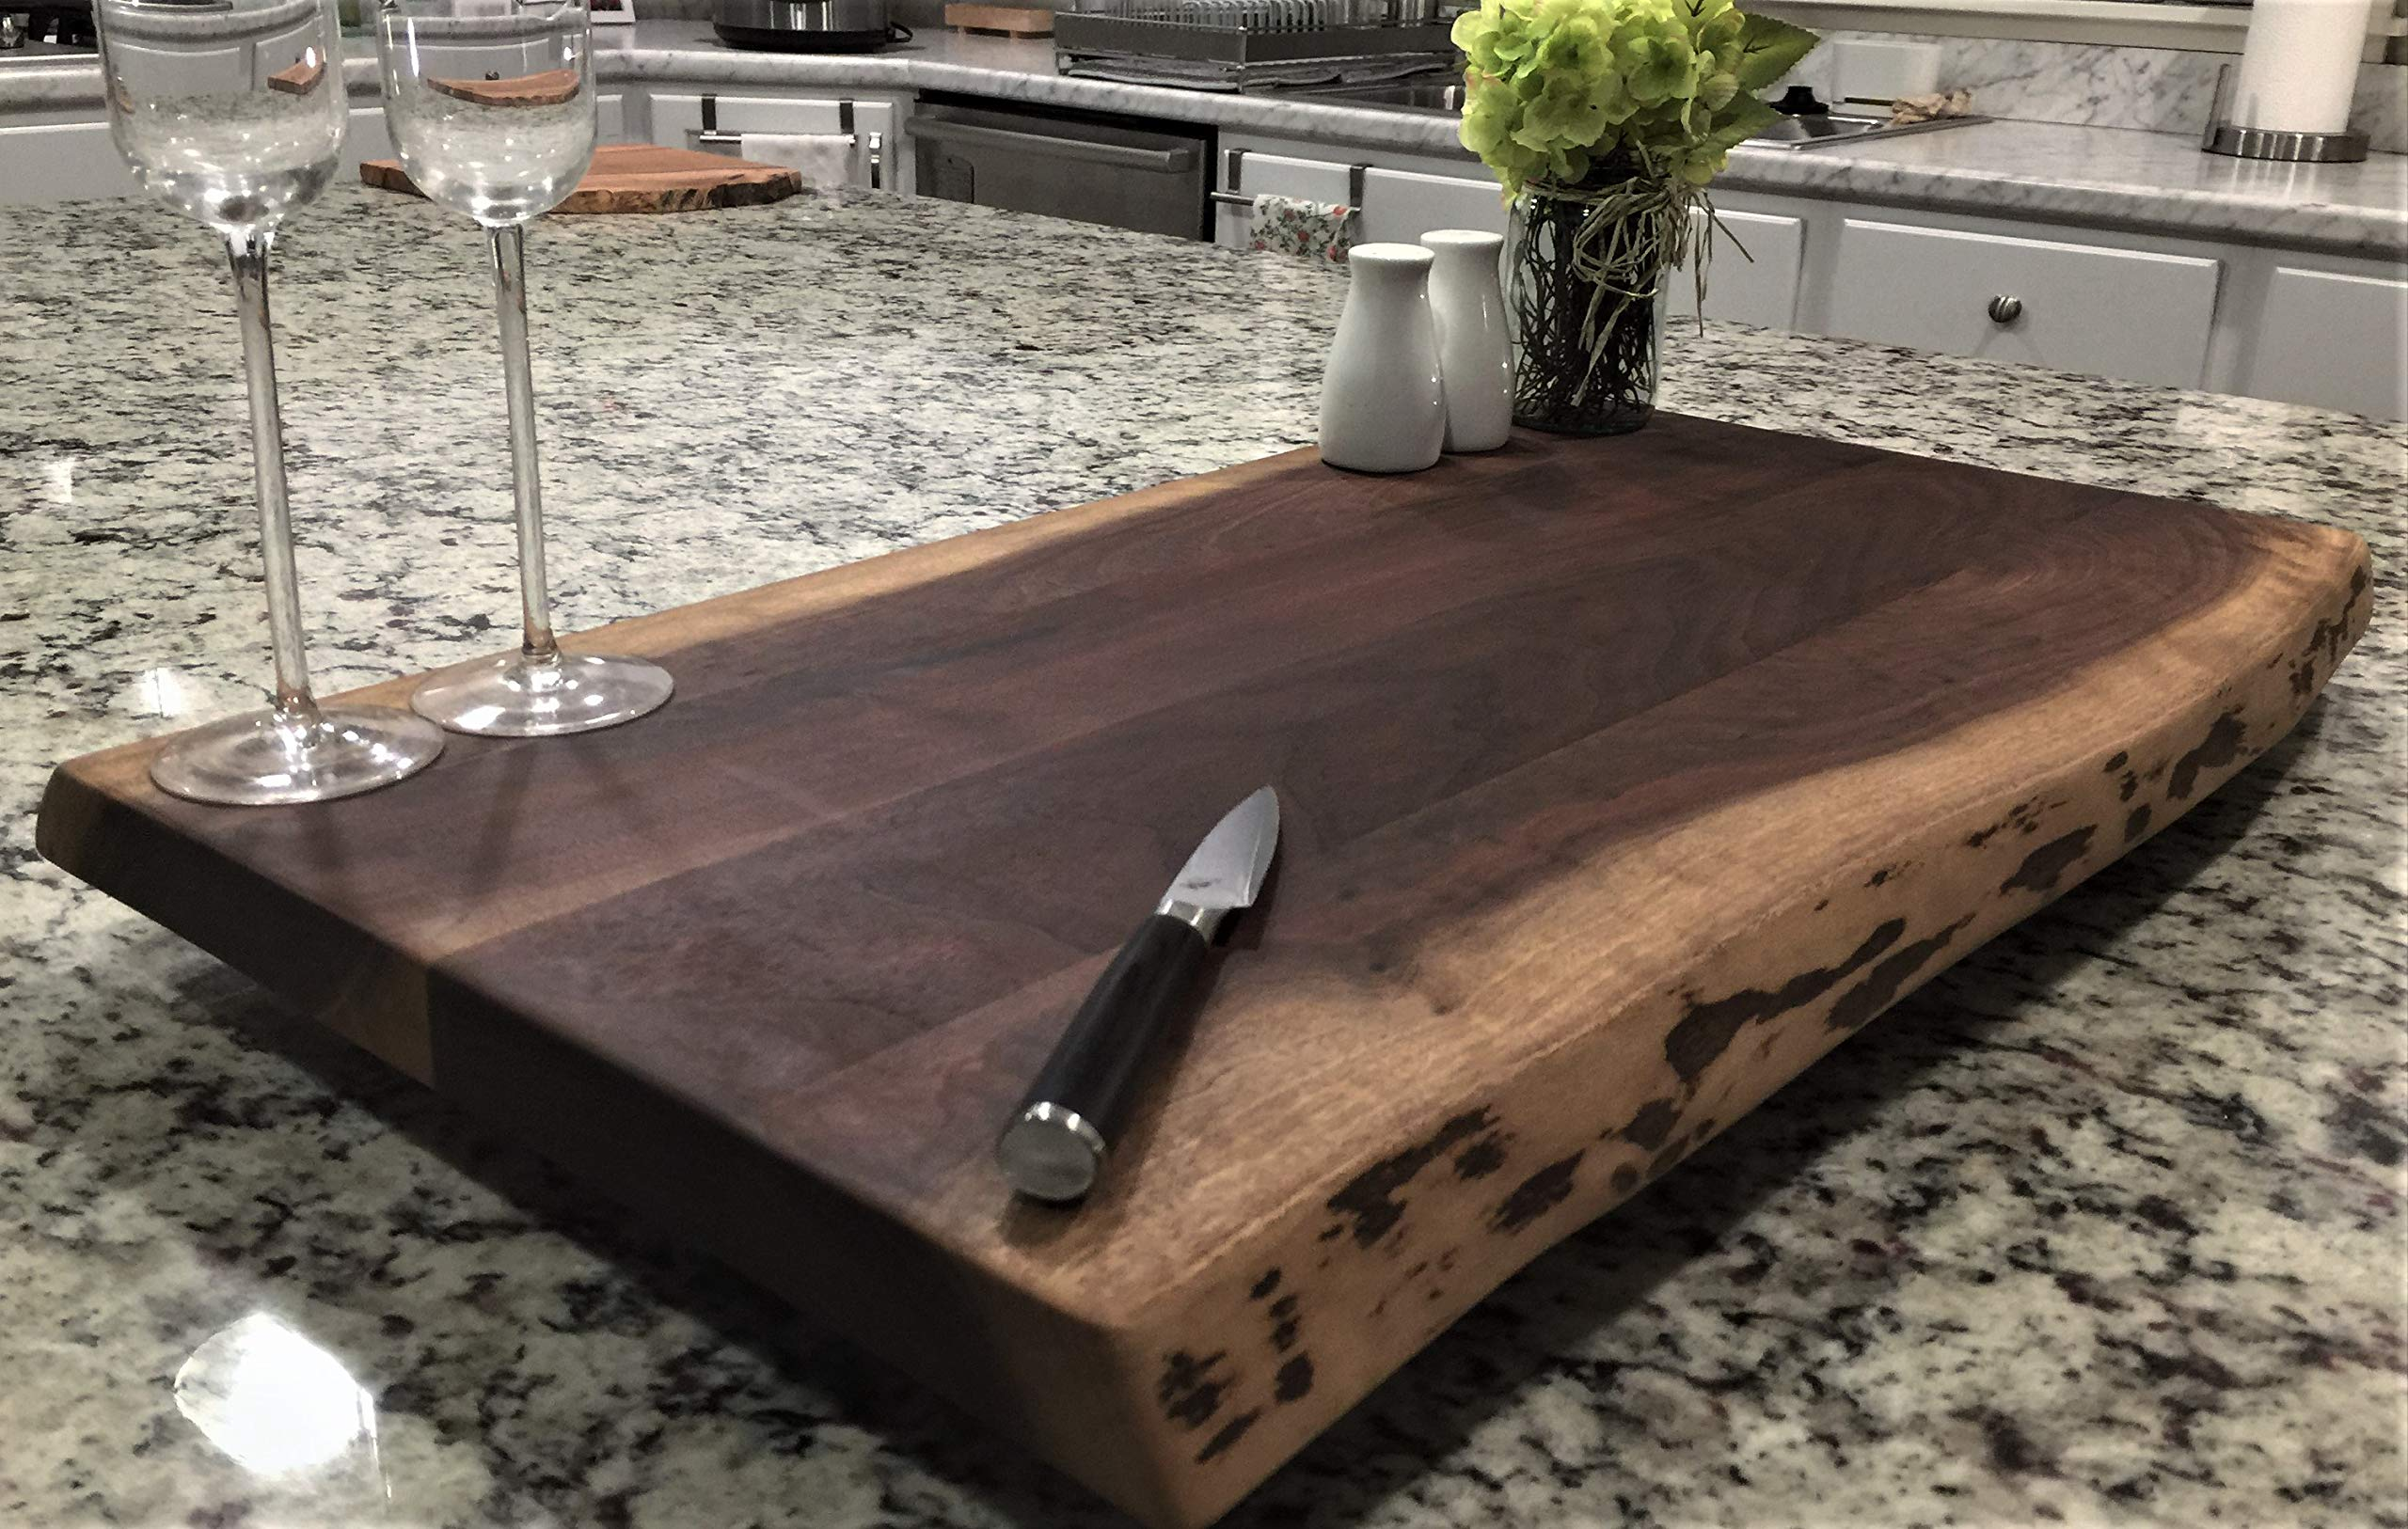 Black Walnut Large, Gorgeous, Full-of-Character, Forest-to-Table Solid Double Live Edge Wood Charcuterie/Appetizer/Dessert/Grazing/Serving Board. 100% USA Handcrafted. 27 x 15 x 1.25''